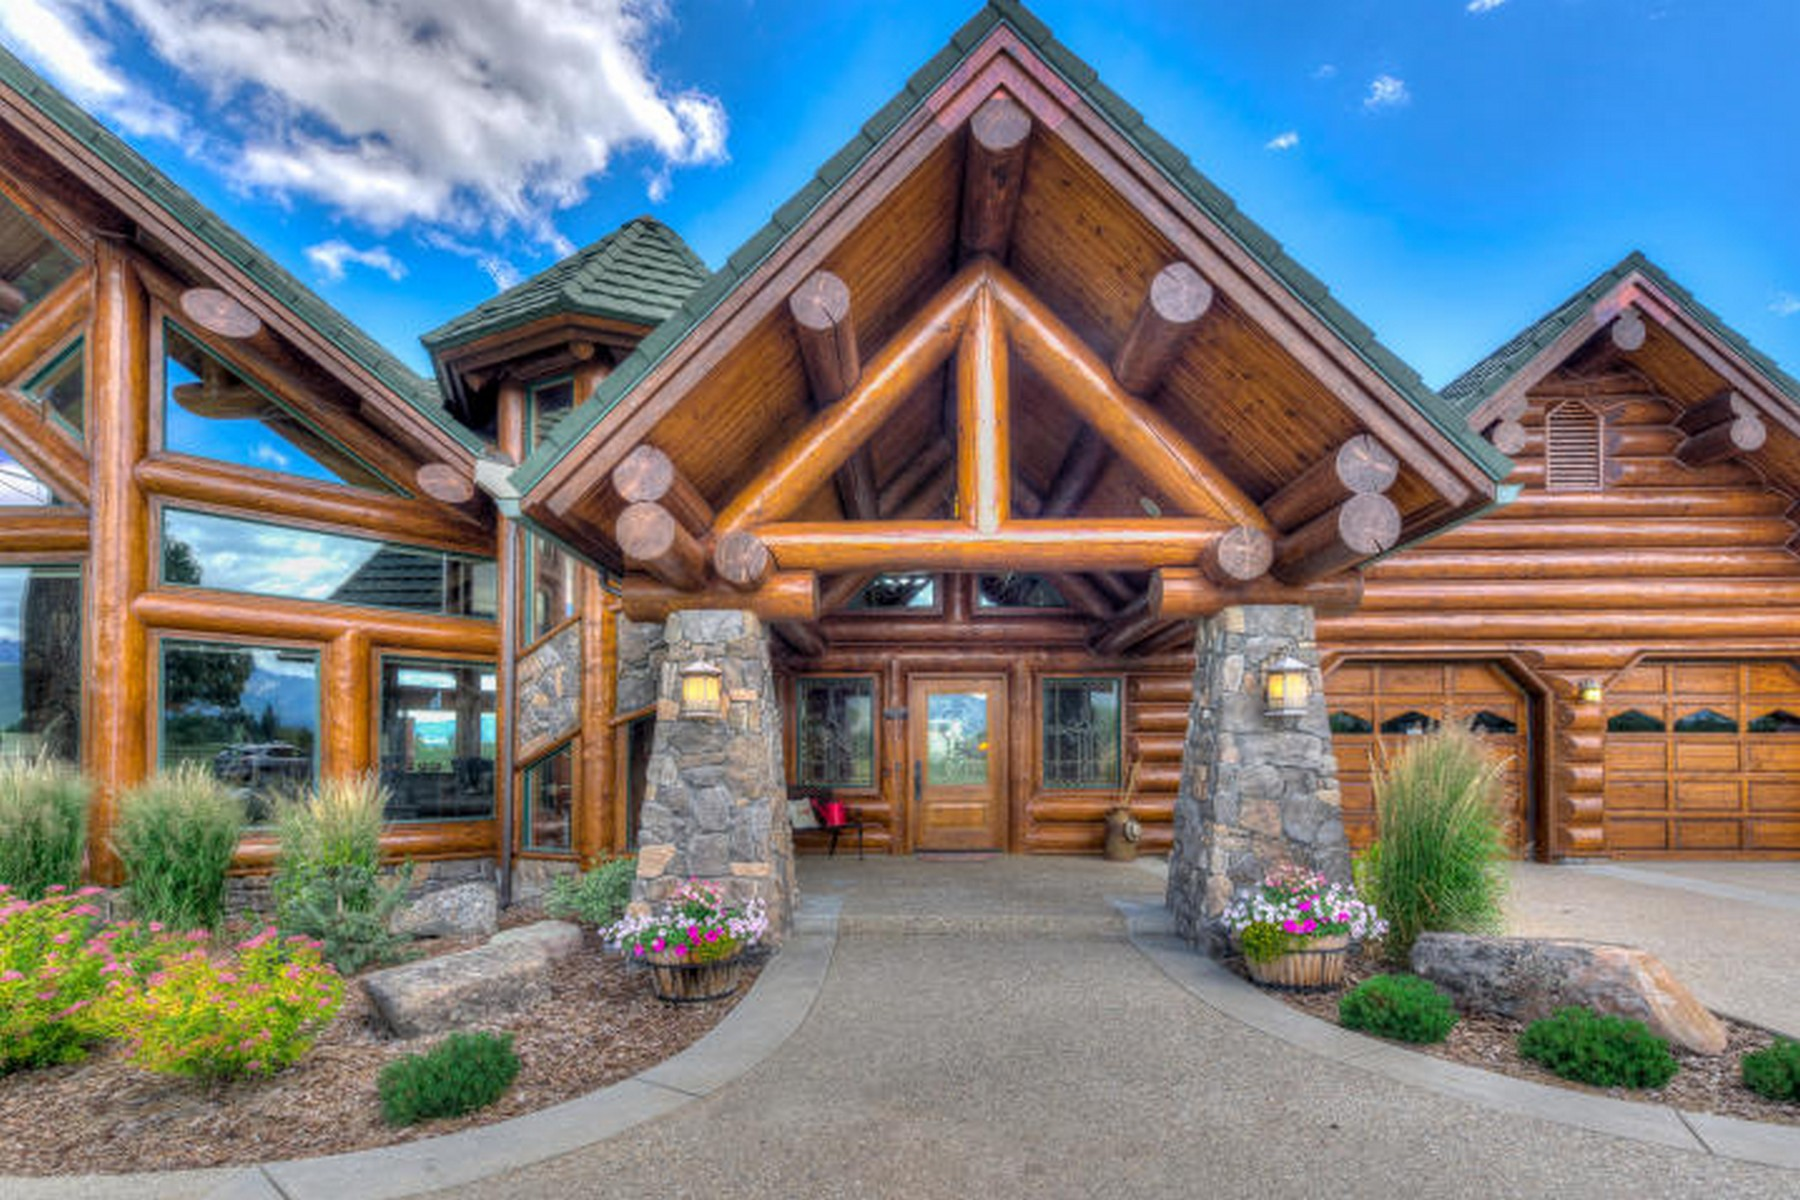 Single Family Homes for Sale at 2988 Hwy 93 North Stevensville, Montana 59870 United States